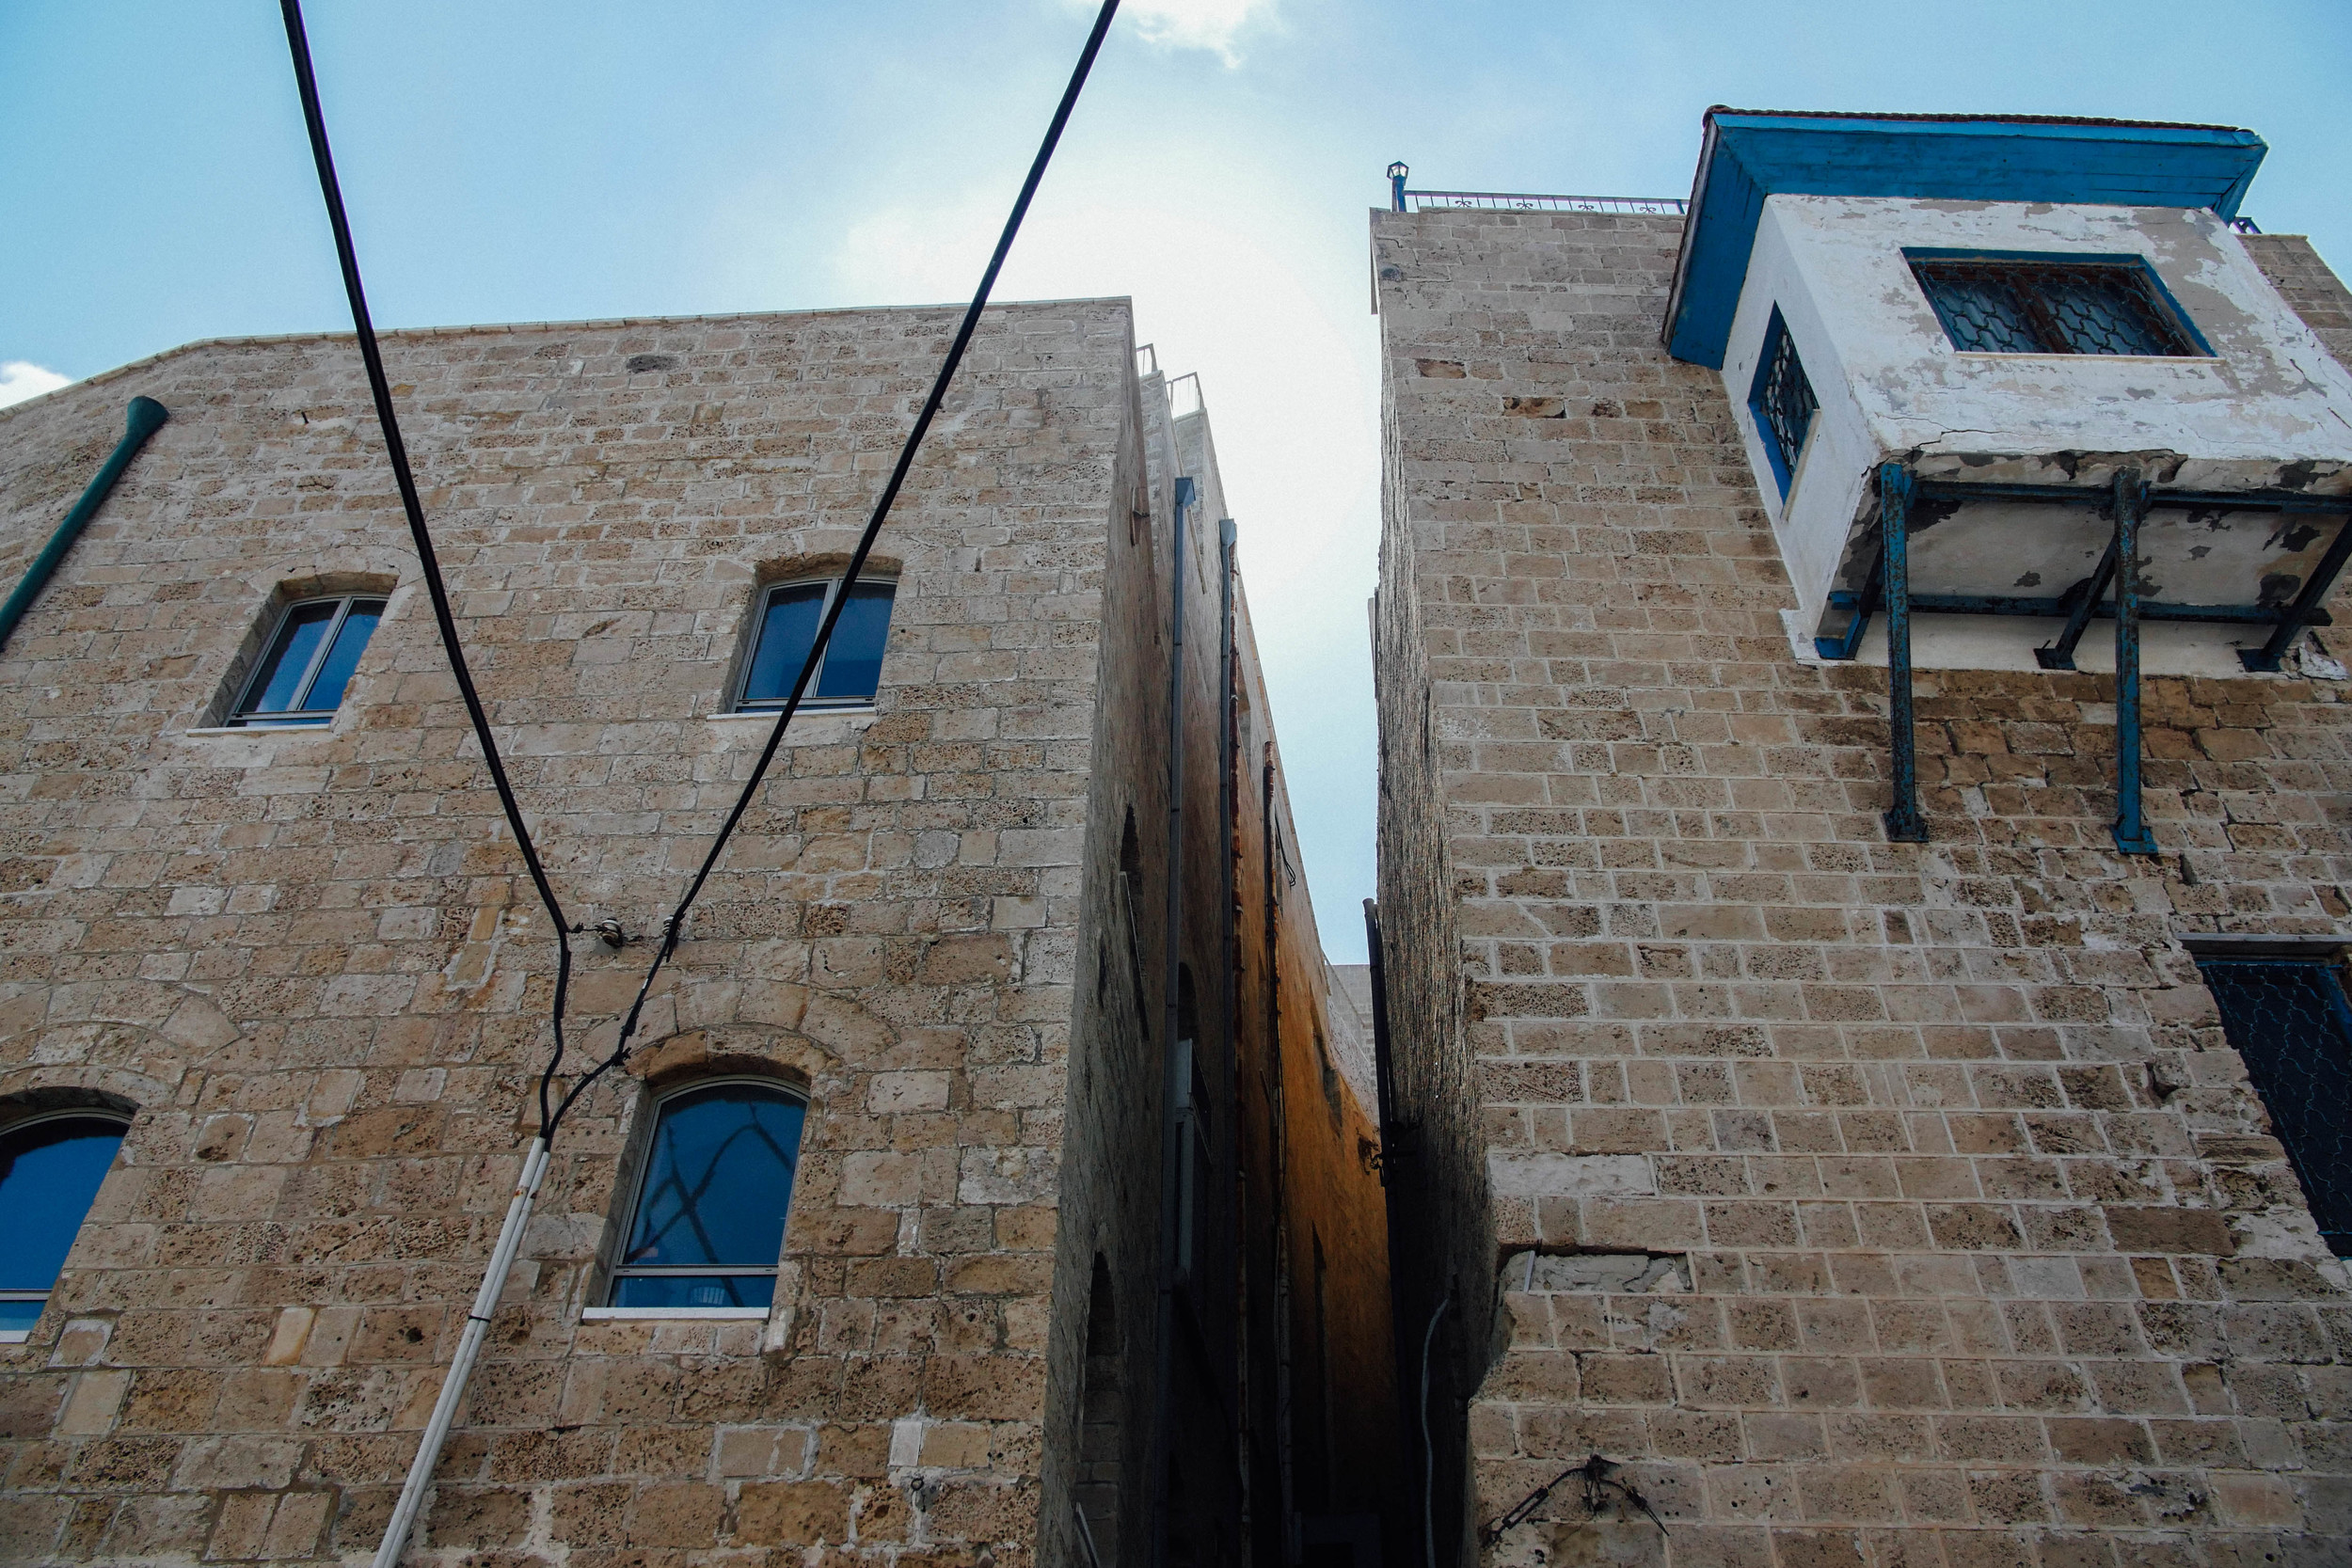 Buildings of the old city of Jaffa